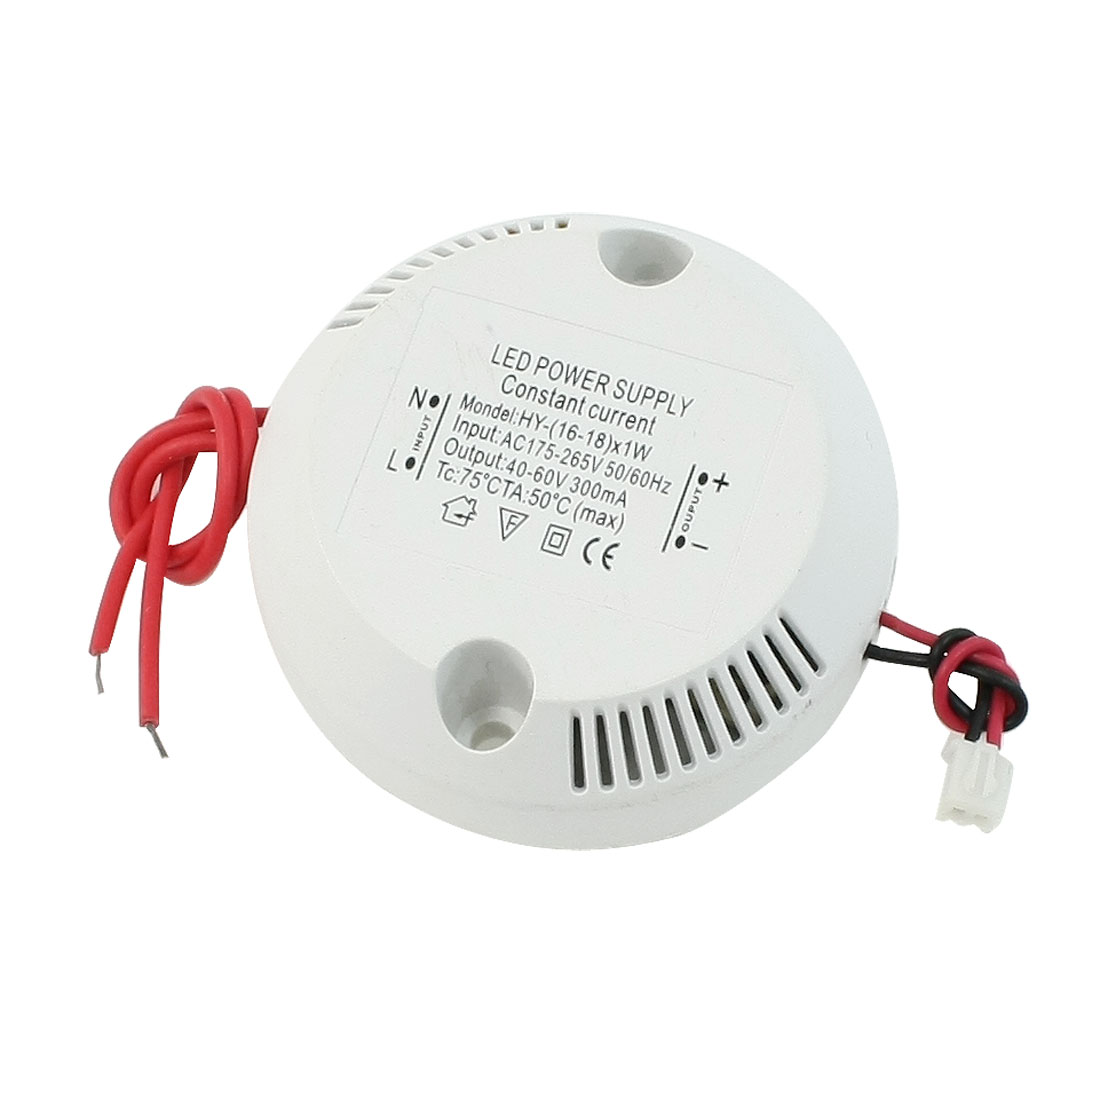 AC 175-265V to DC 40-60V (16-18)X1W Round Power Supply Driver for LED Strip Light